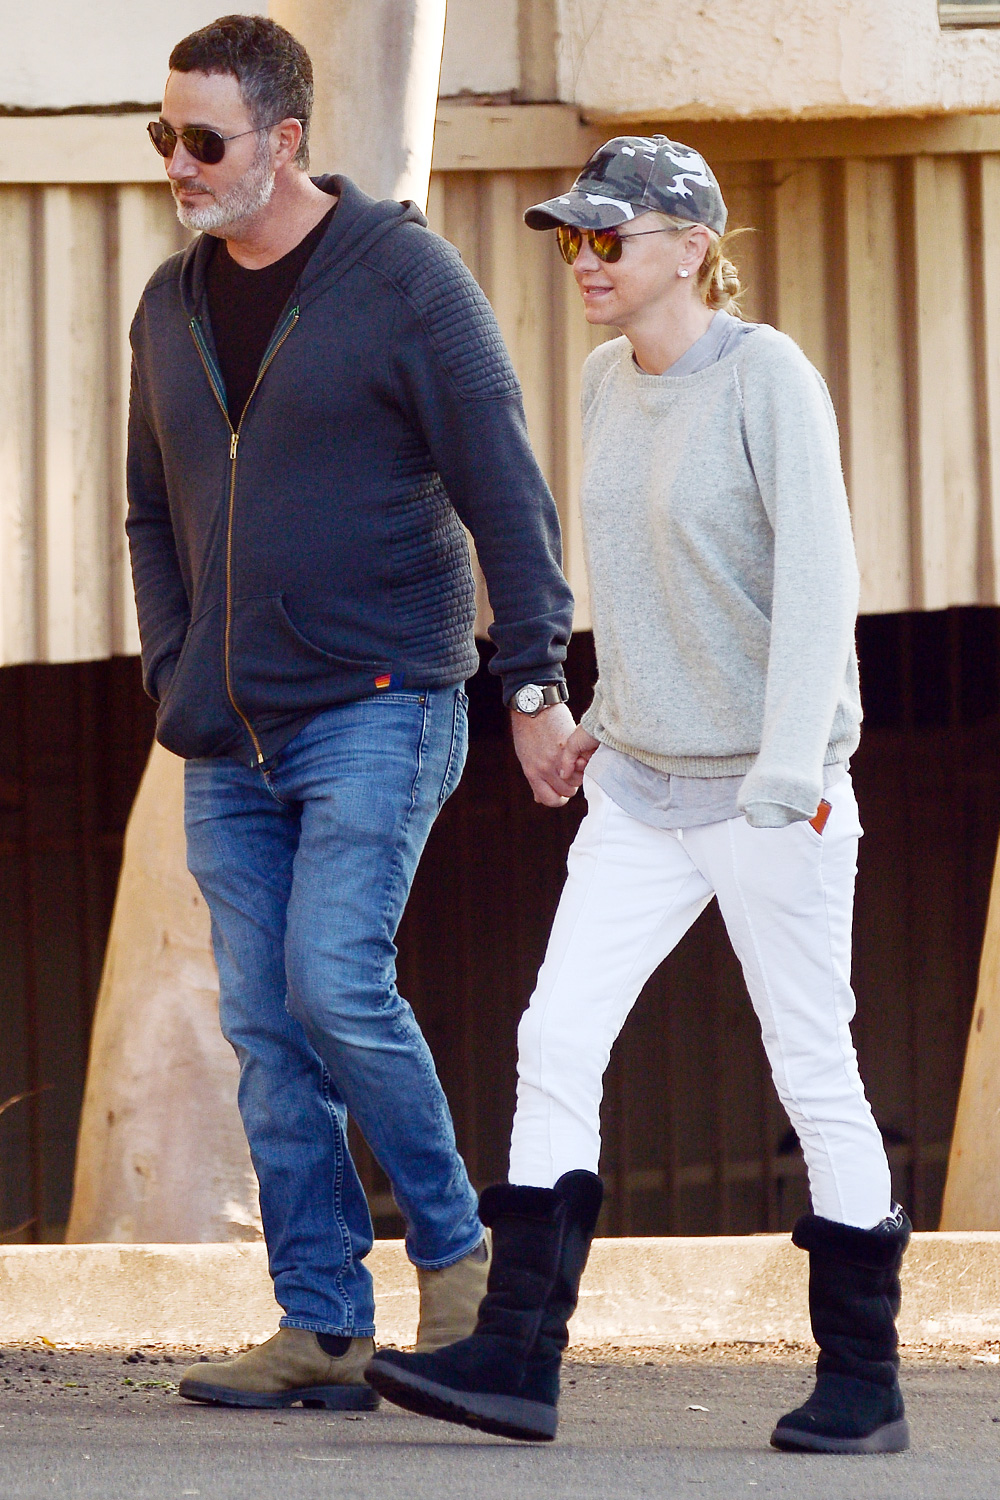 Anna Faris and fiance Michael Barrett are pictured holding hands while on stroll in Los Angeles